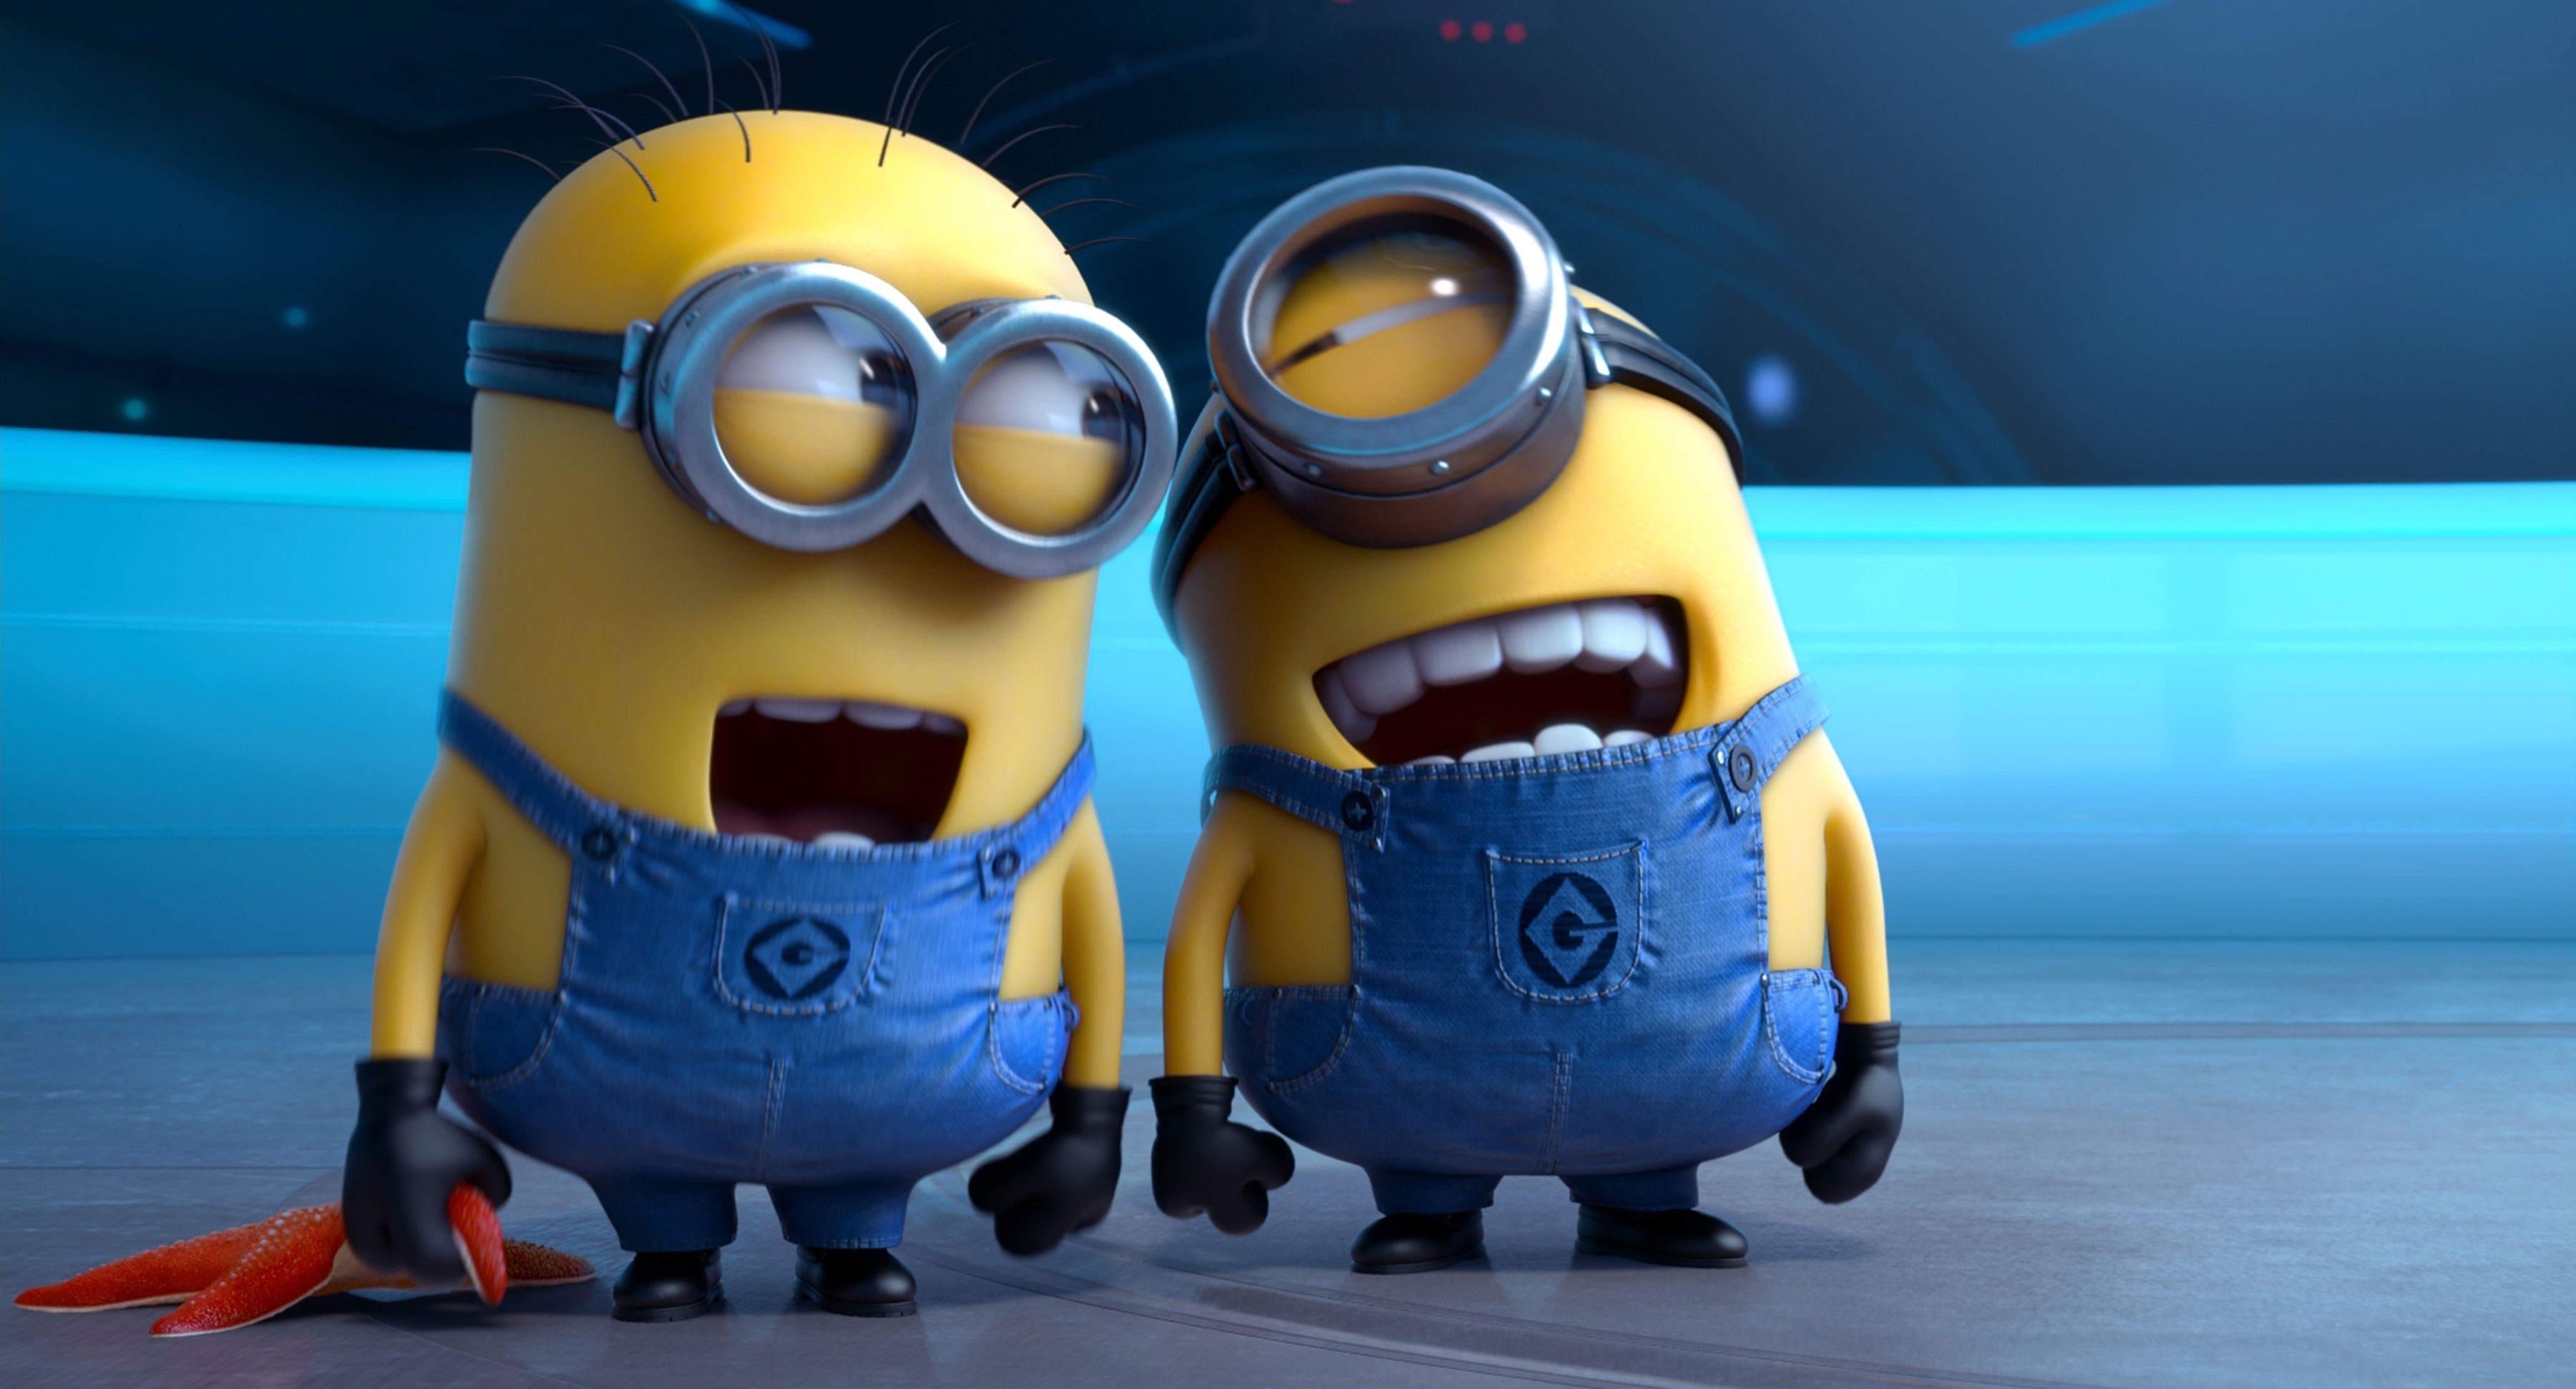 Cute Girly Elephant Wallpaper A Cute Collection Of Despicable Me 2 Minions Wallpapers